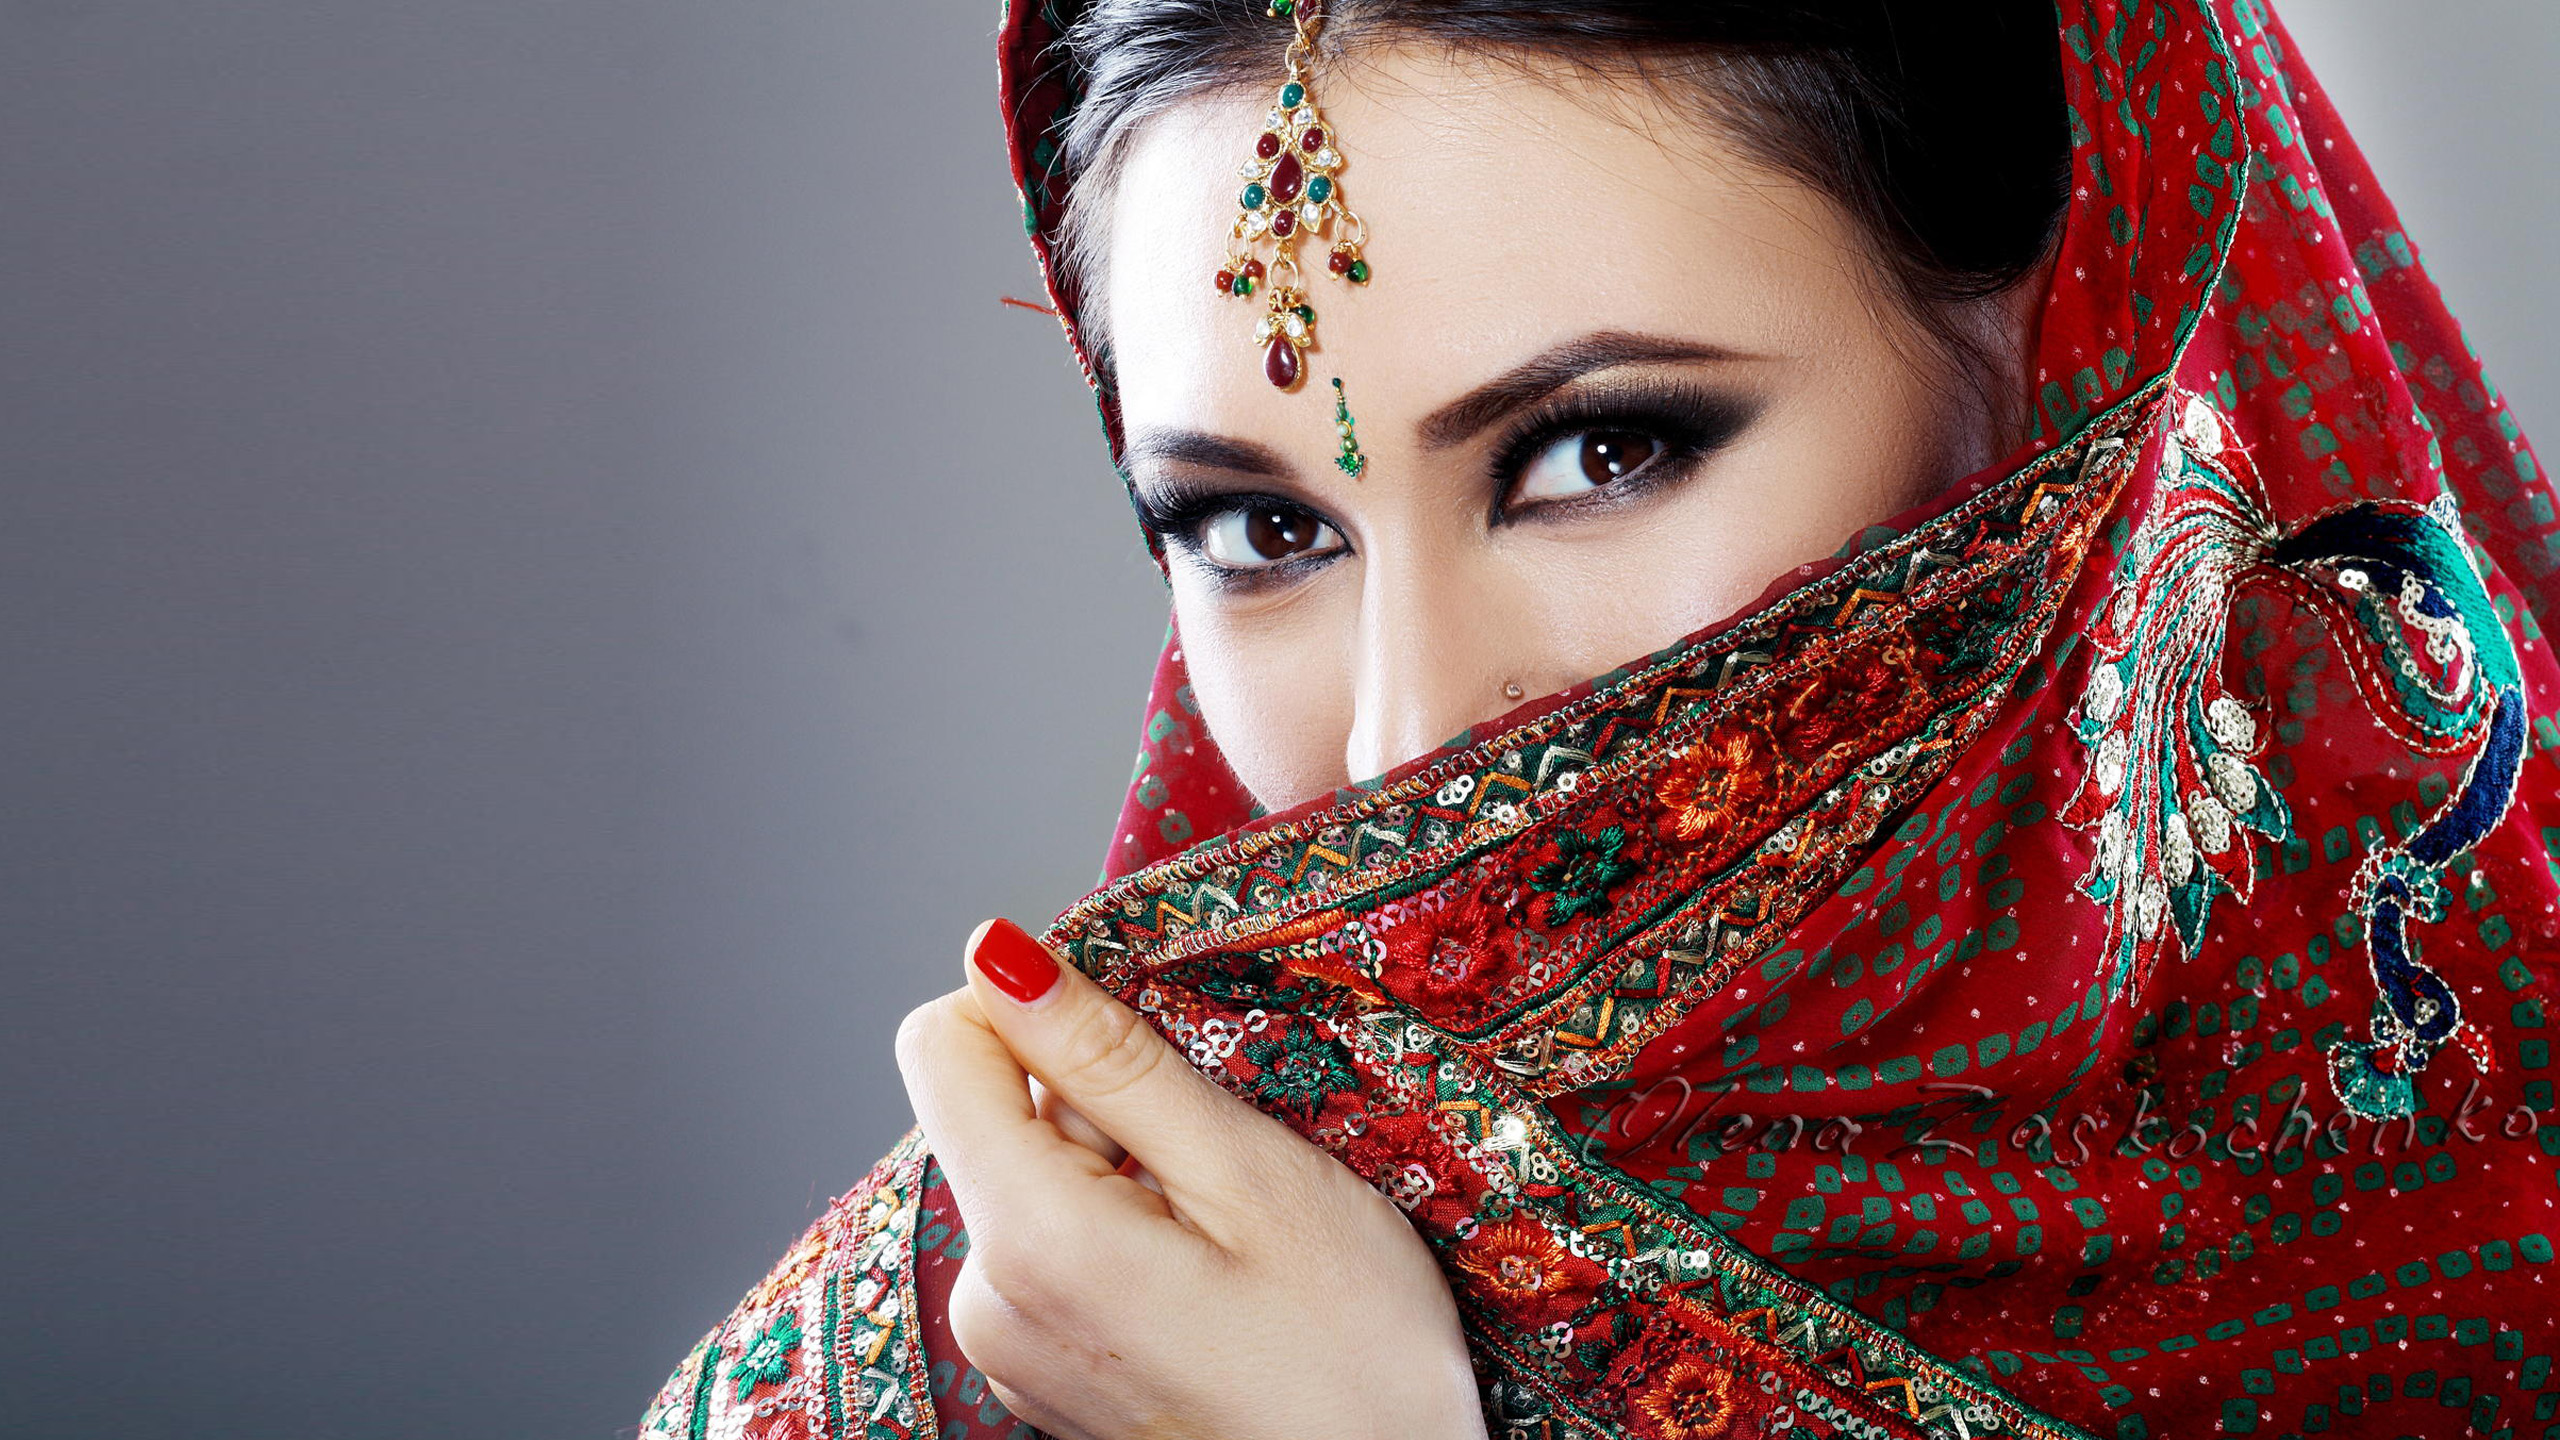 Beautiful Eyes of Indian Girl with Saree | HD Wallpapers